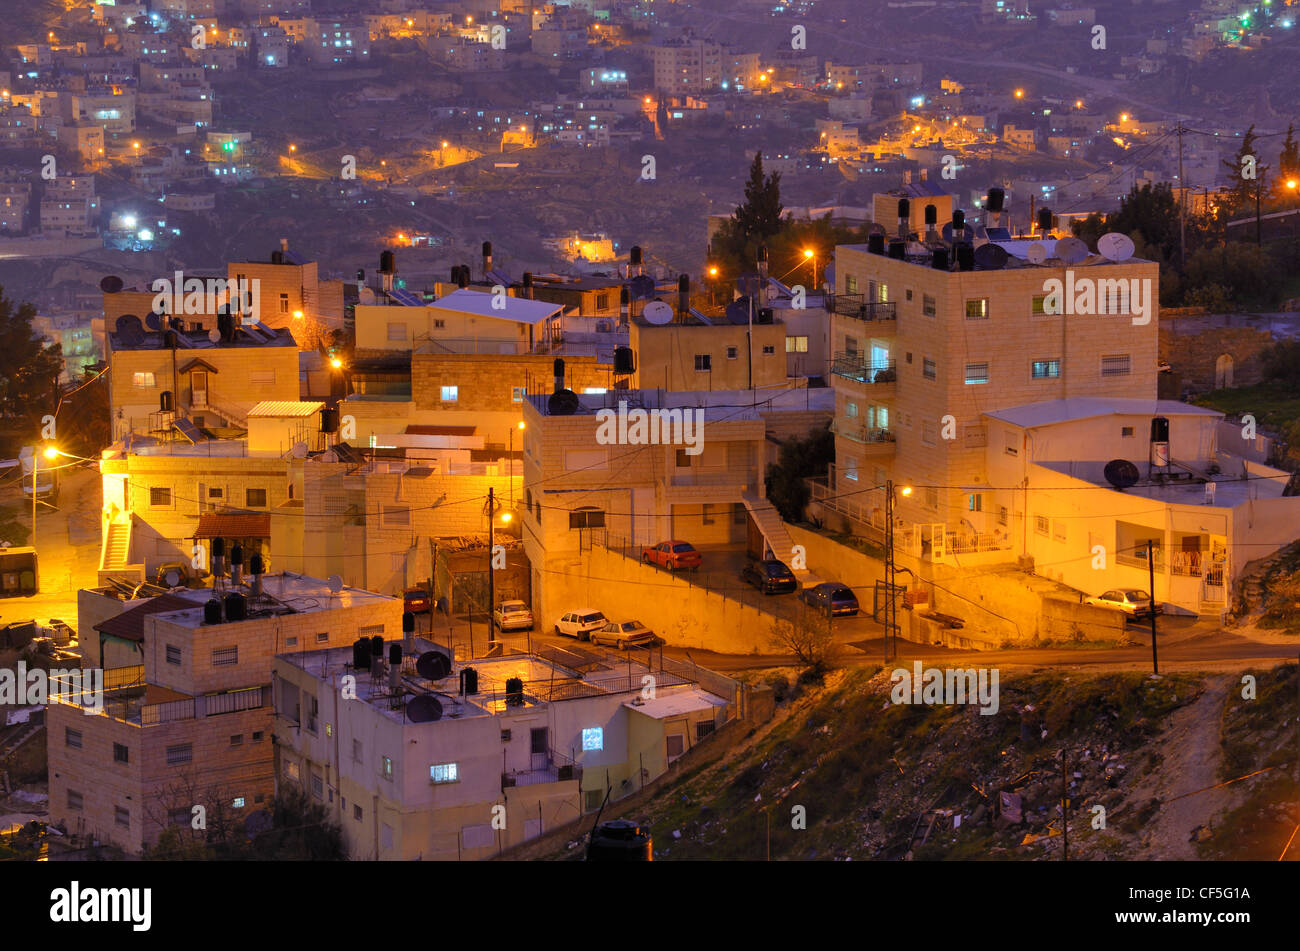 Arab Village in Jerusalem, Israel. - Stock Image